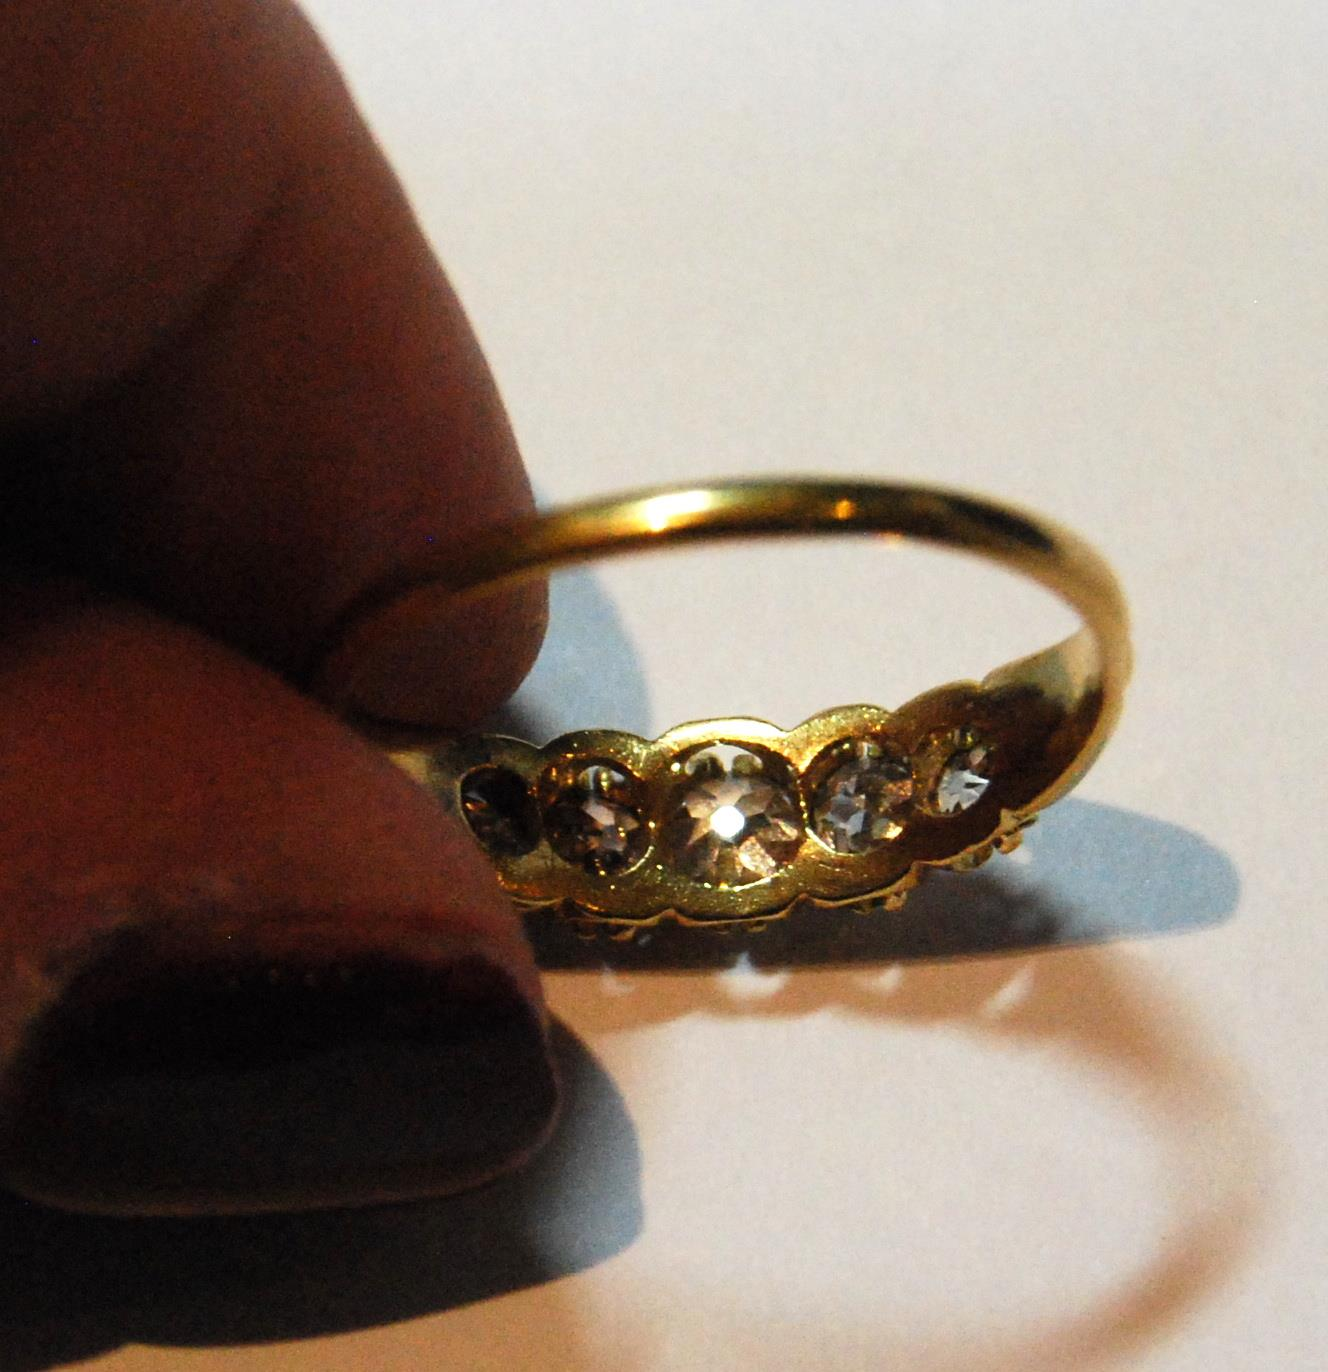 Victorian diamond five-stone half hoop ring, old-cut brilliants, in gold, size Q. - Image 4 of 4